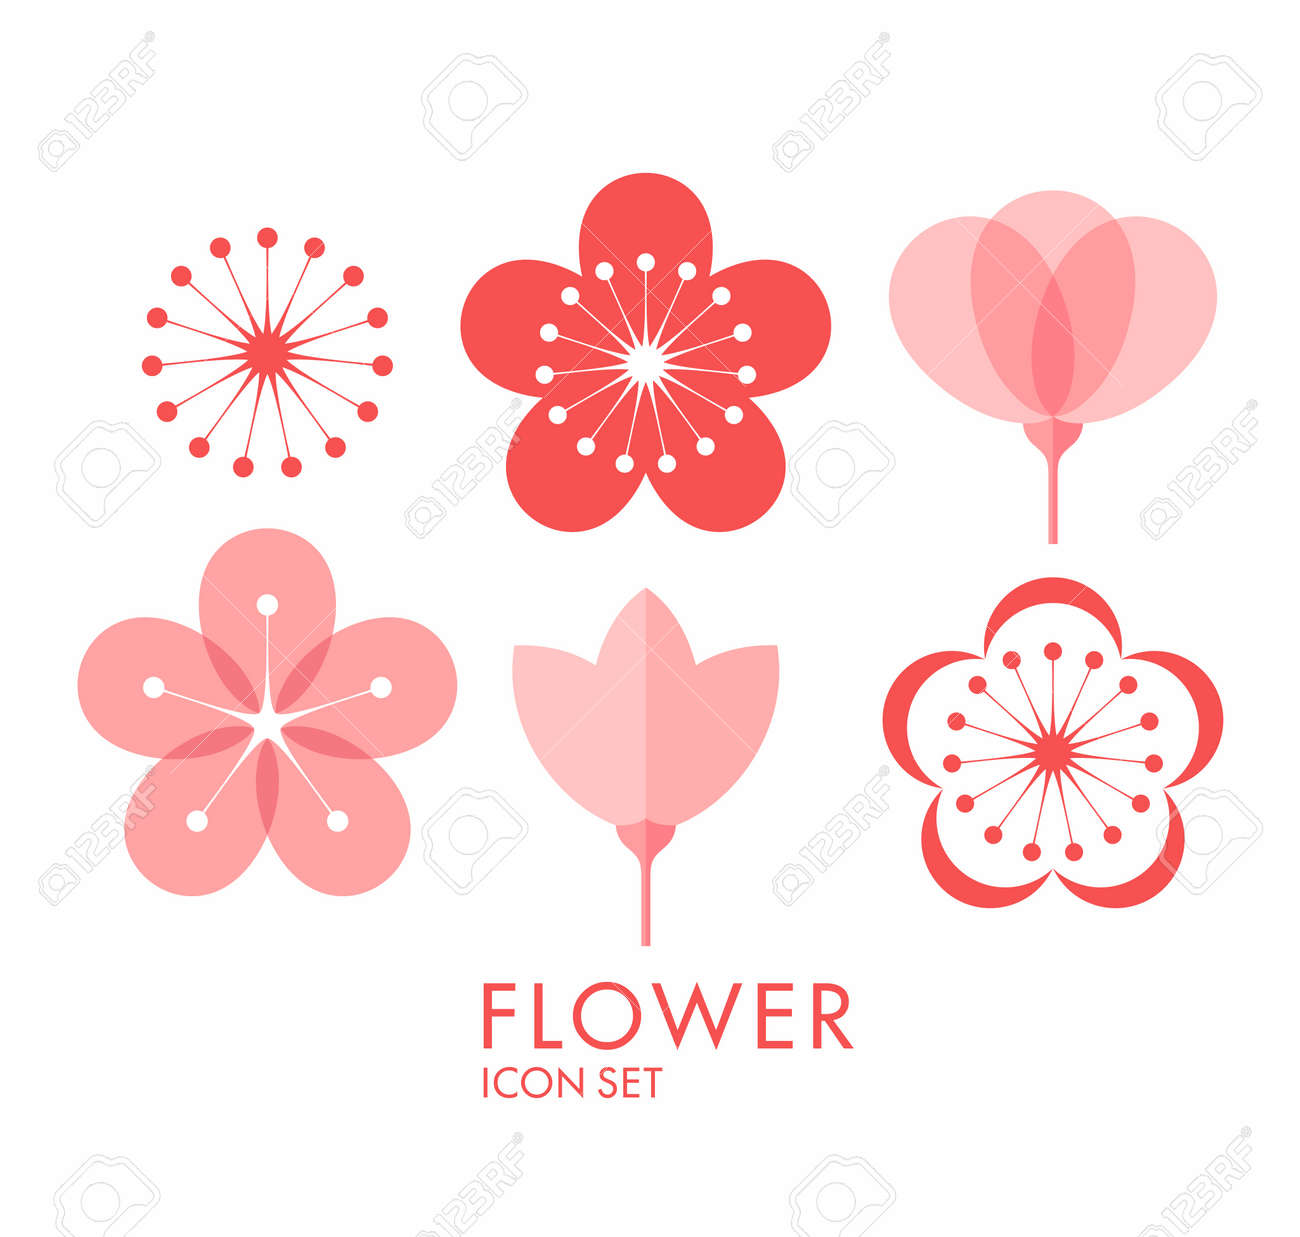 Flower icon set sakura royalty free cliparts vectors and stock flower icon set sakura stock vector 37072724 dhlflorist Images